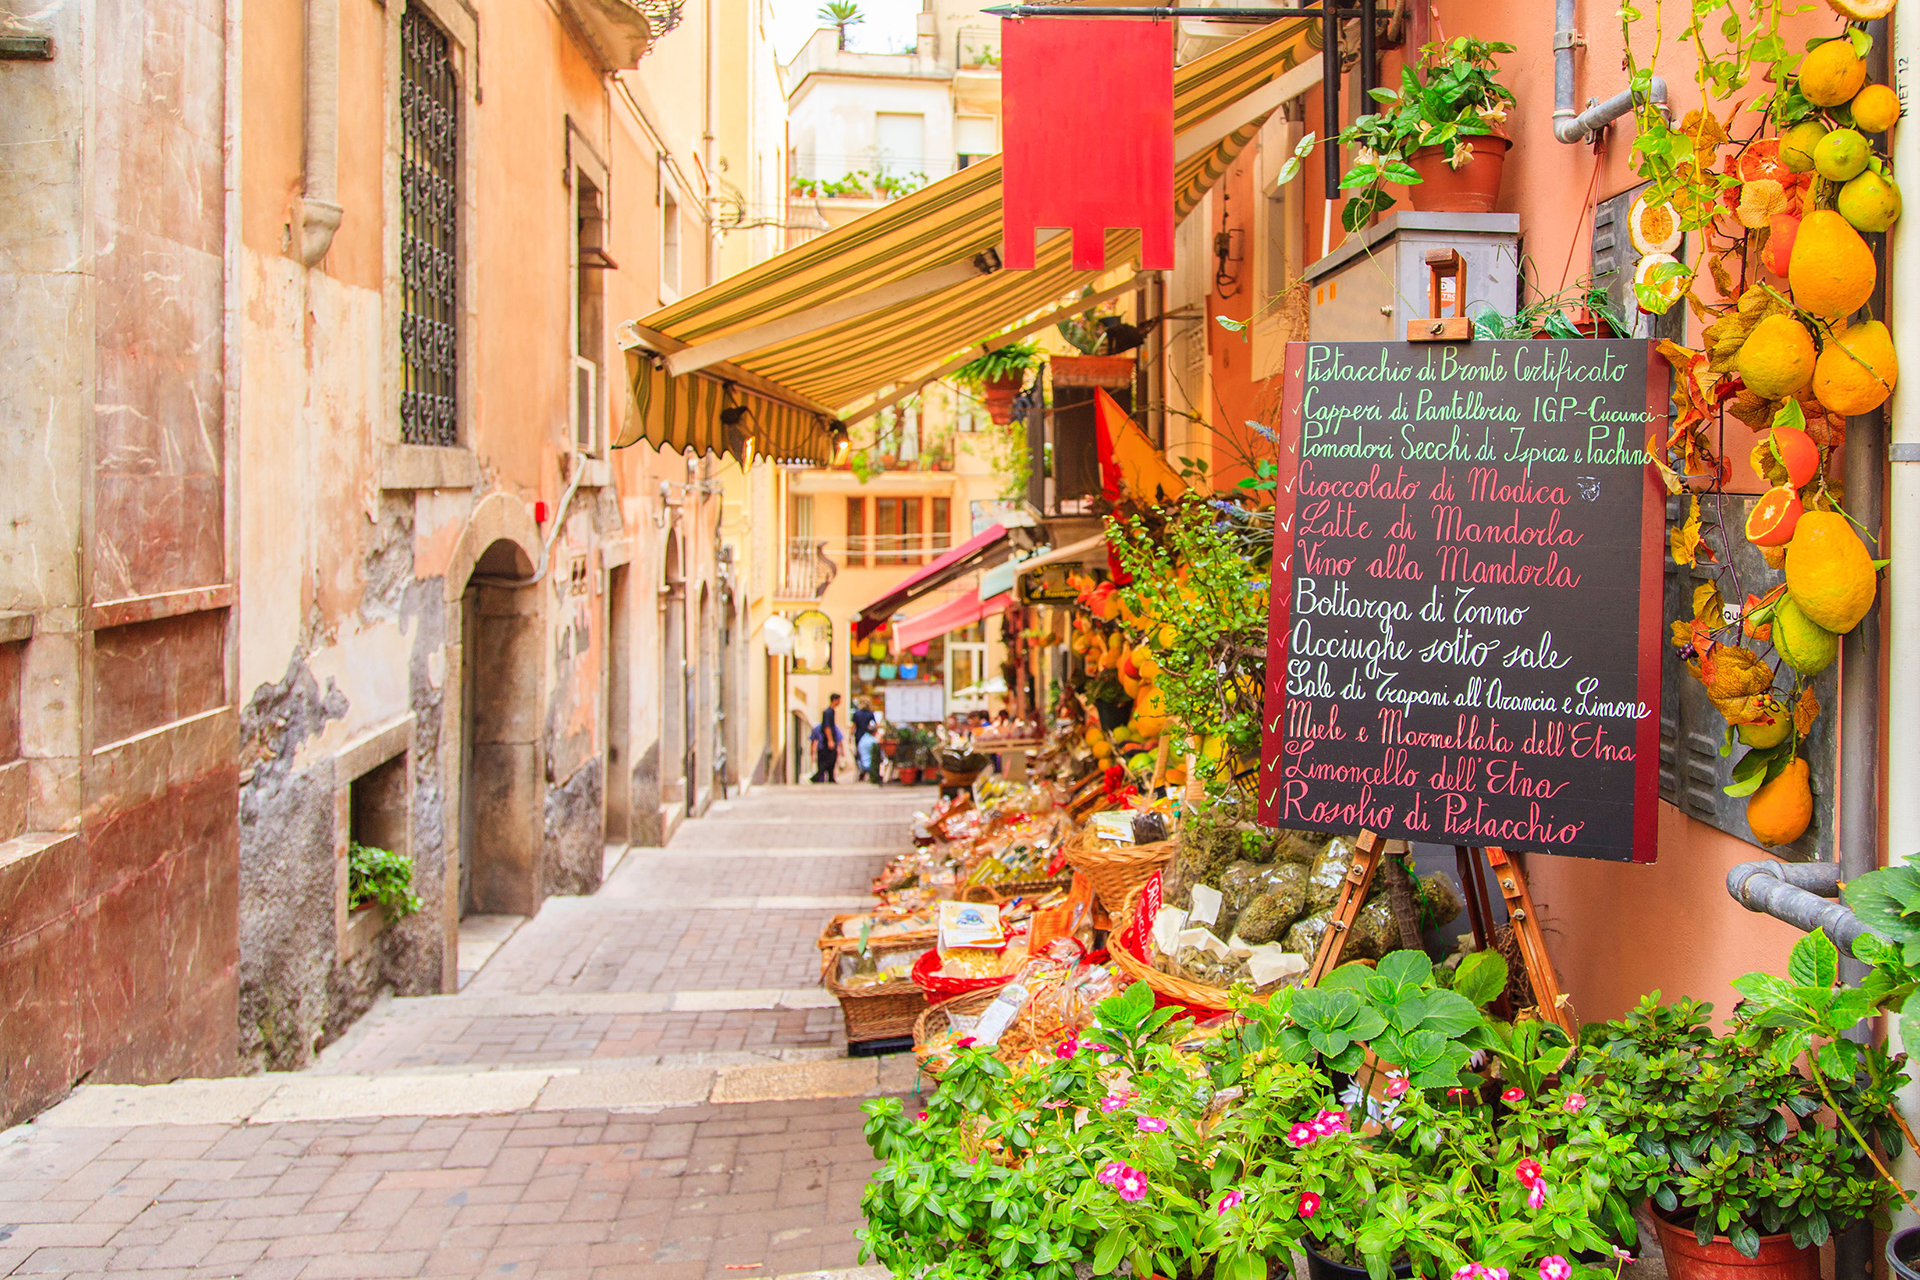 Side street in Italian city a with a vegetable/fruit market